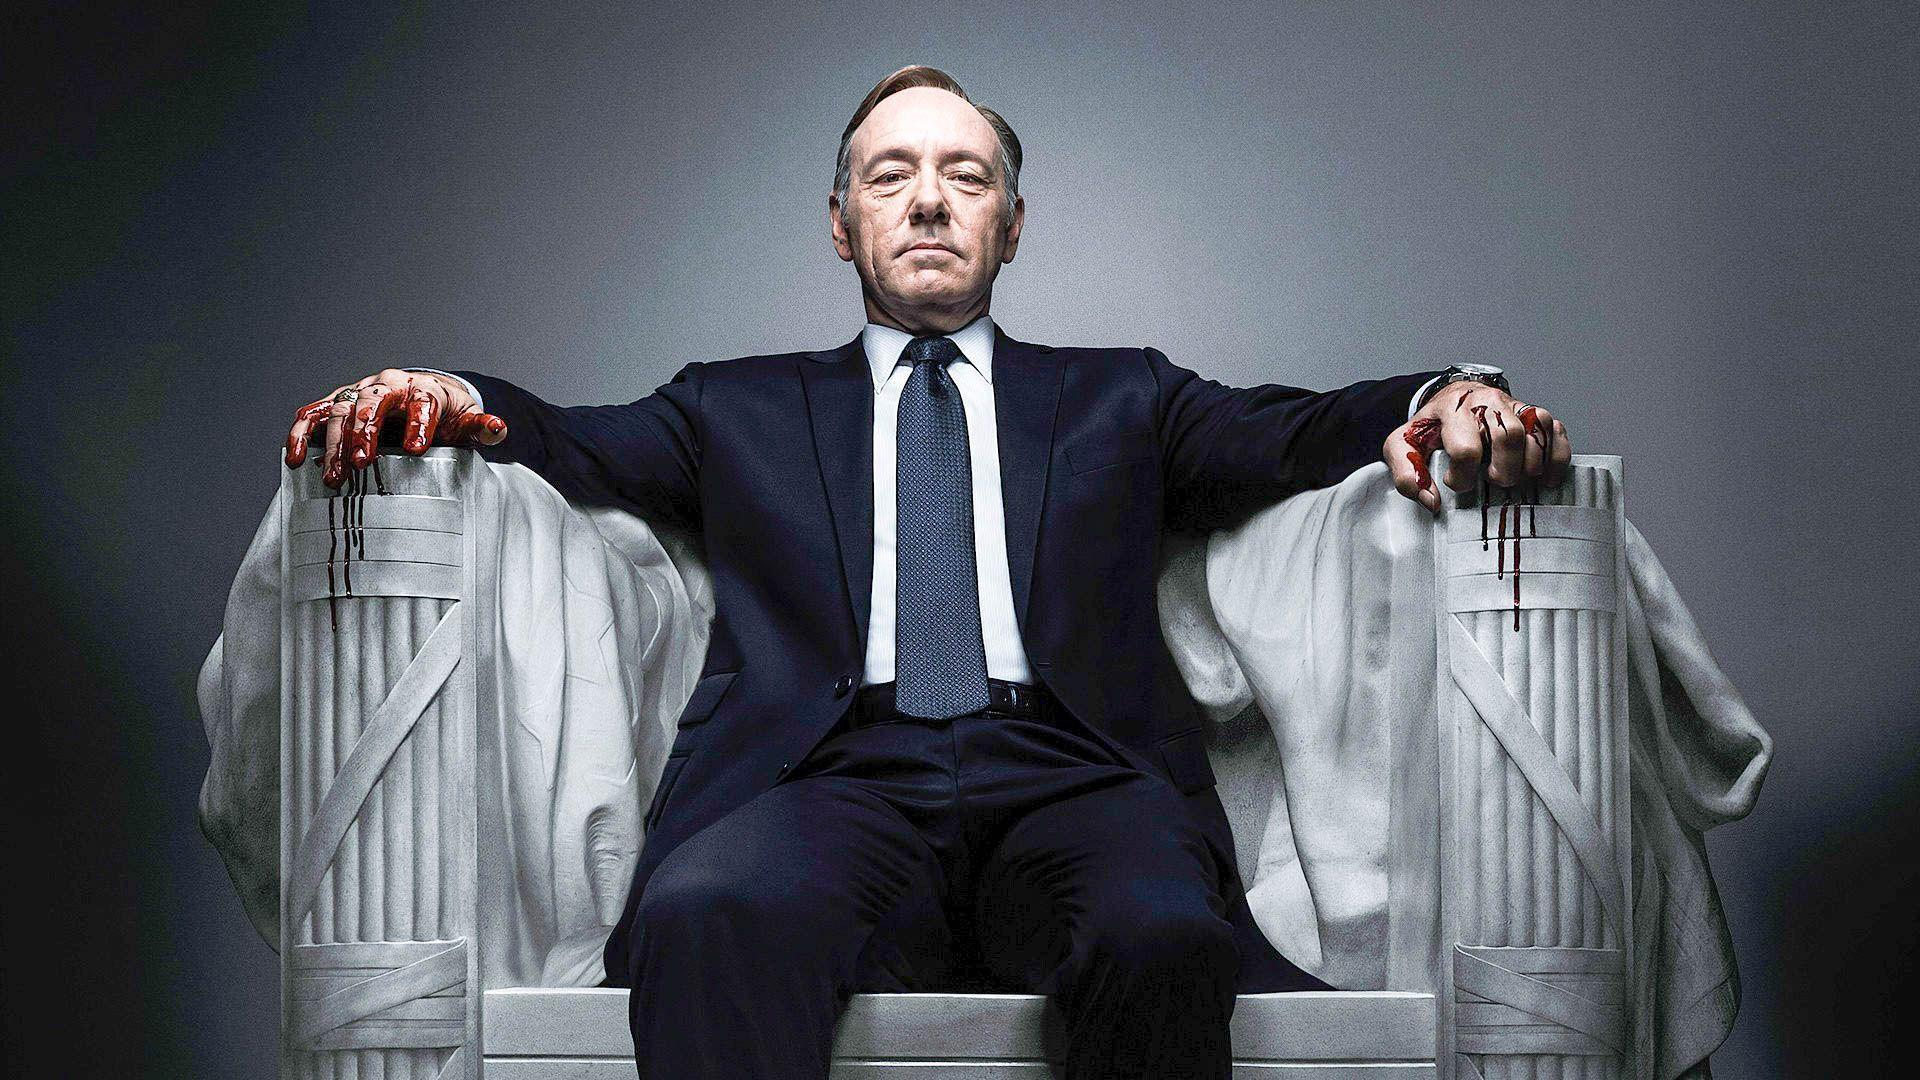 House Of Cards Amazing HD Pictures, Image & Wallpapers